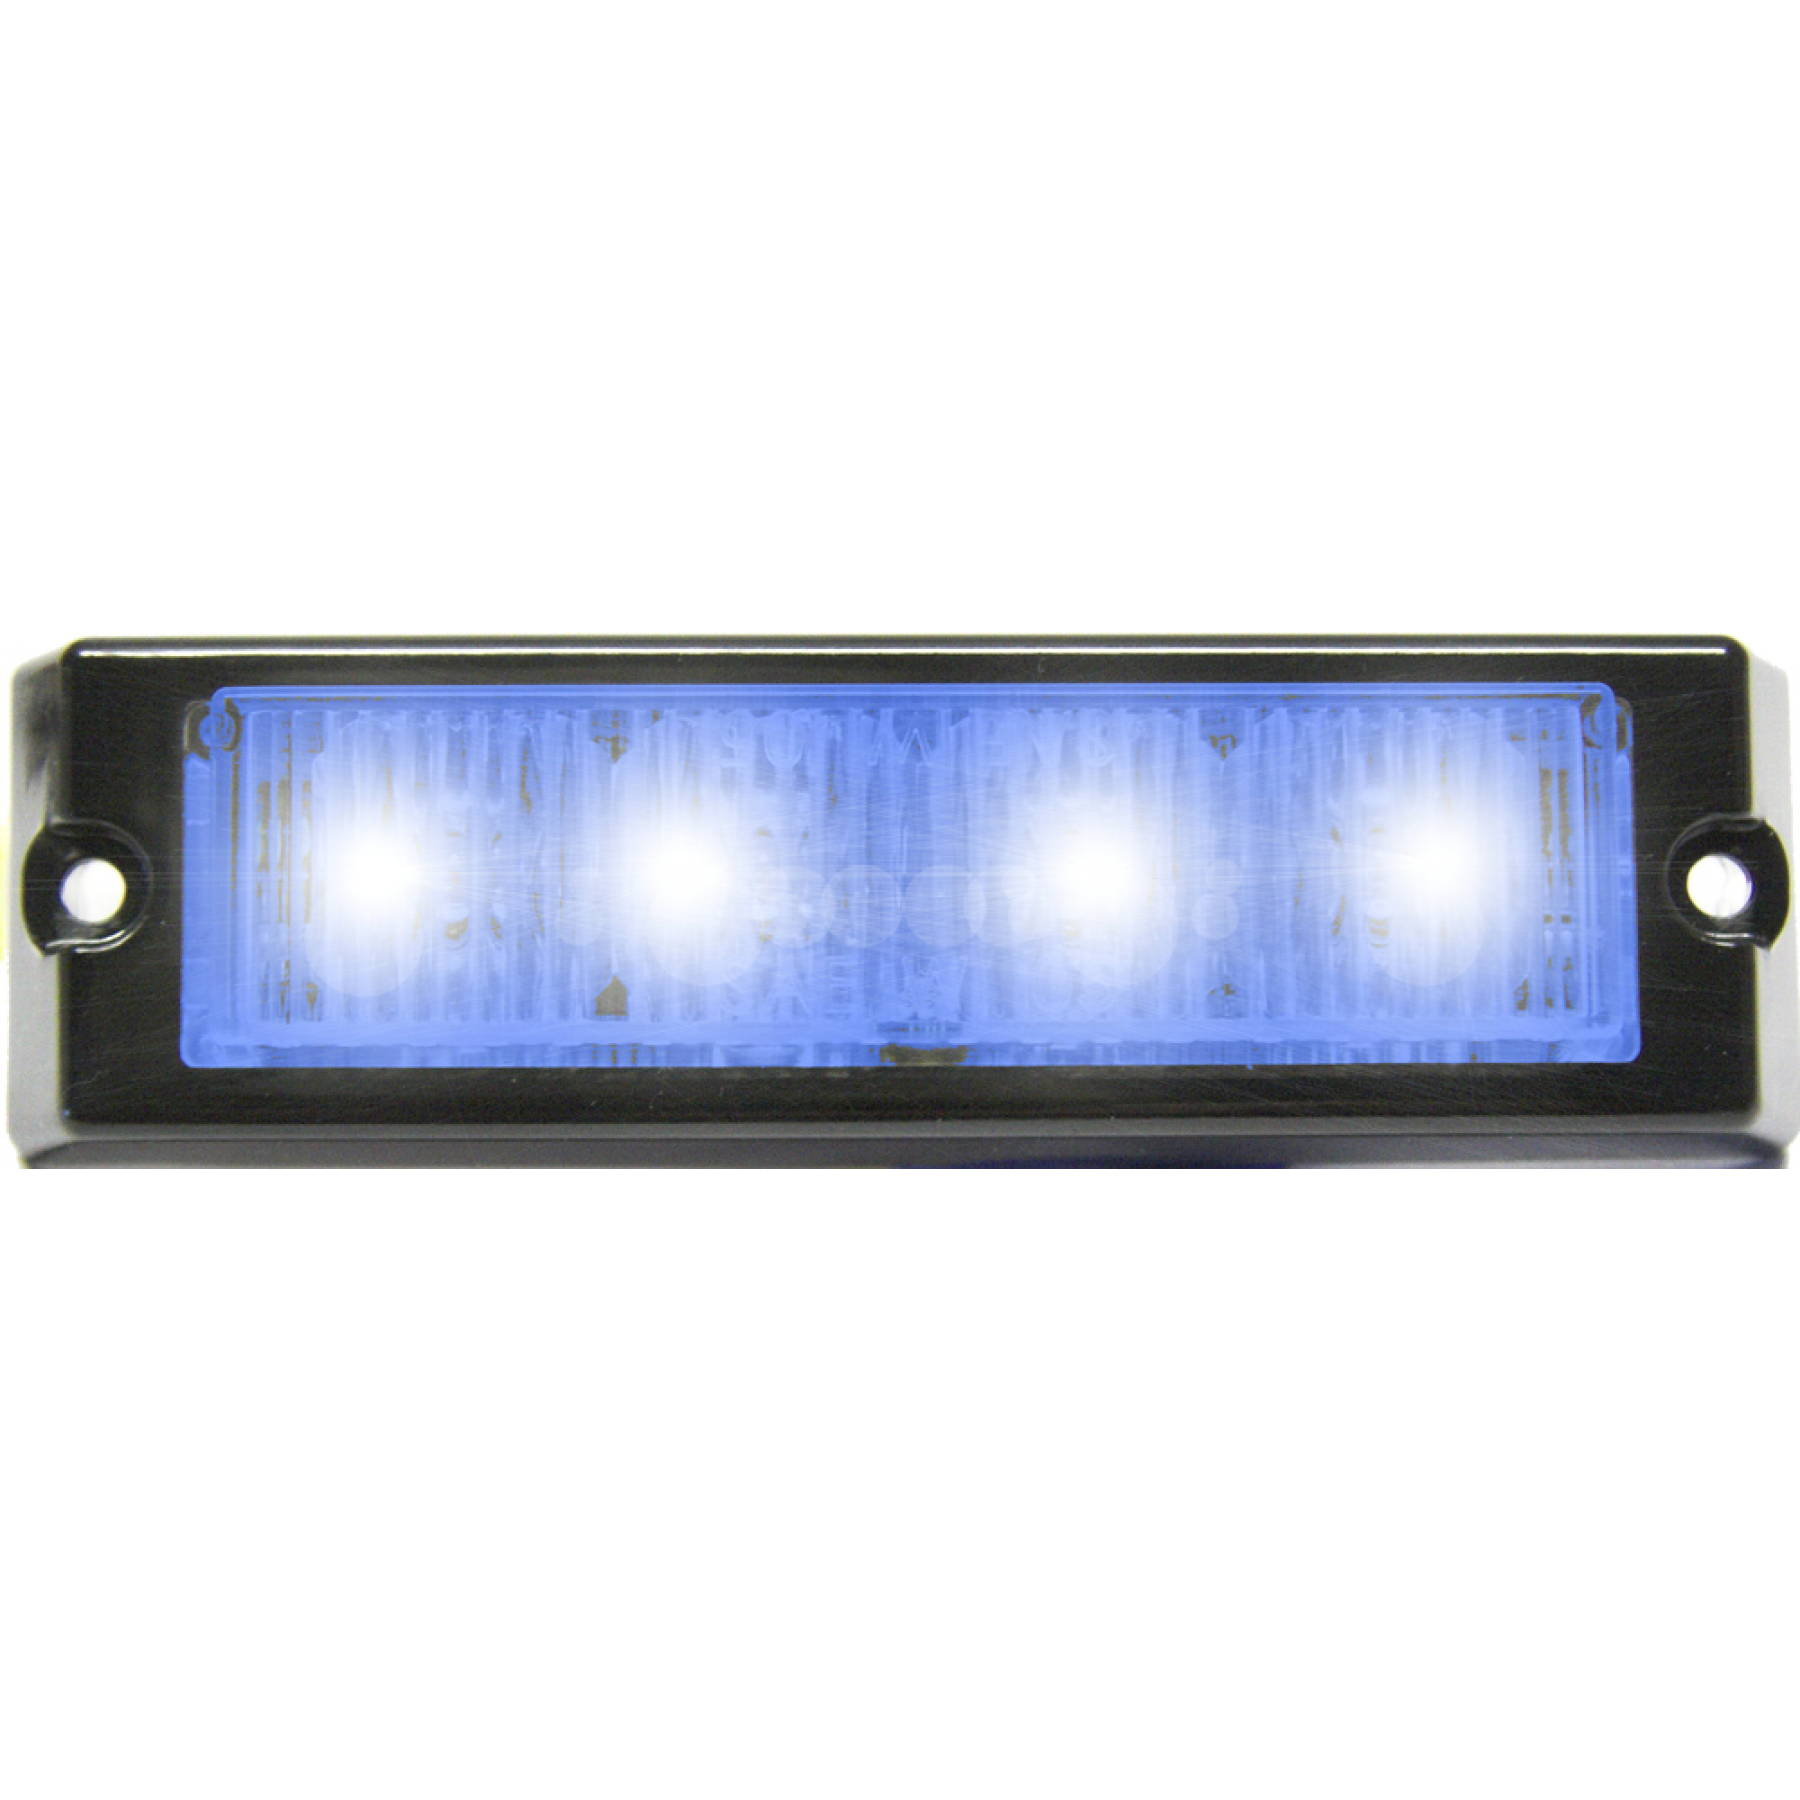 Kippenlamp LED blauw 12v